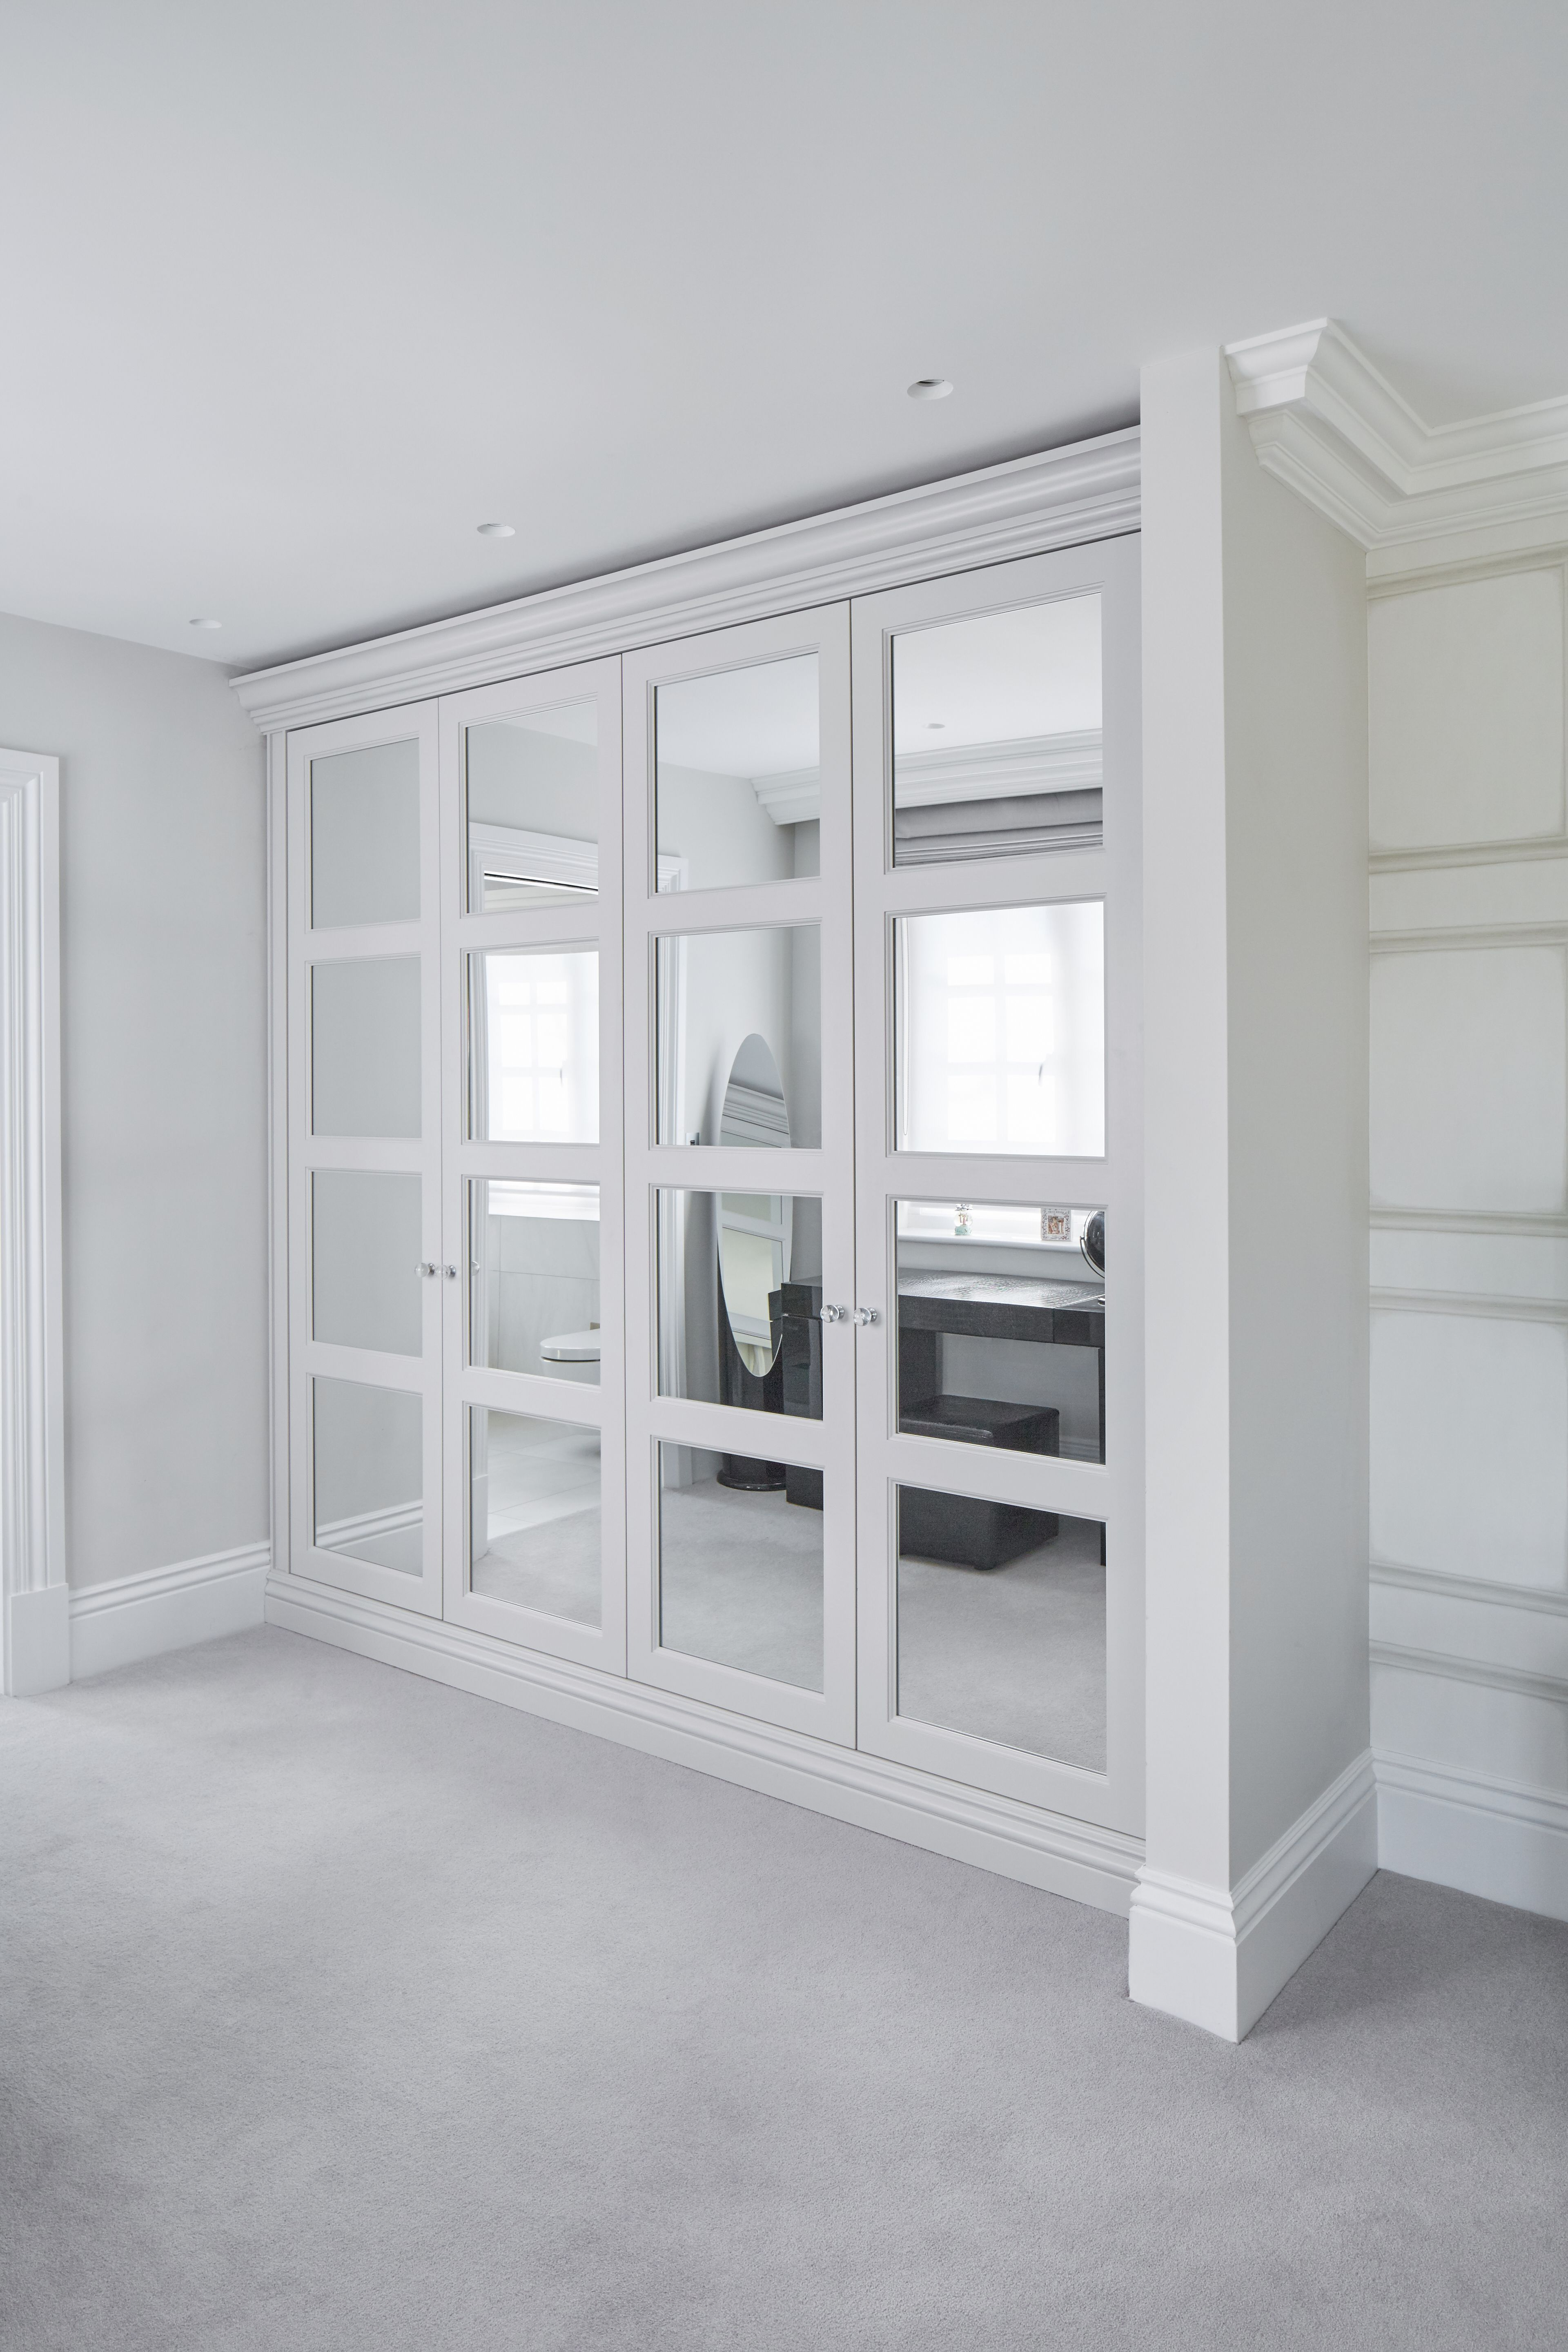 For luxury mirrored fitted bedroom wardrobes, discover The Heritage Wardrobe Company.